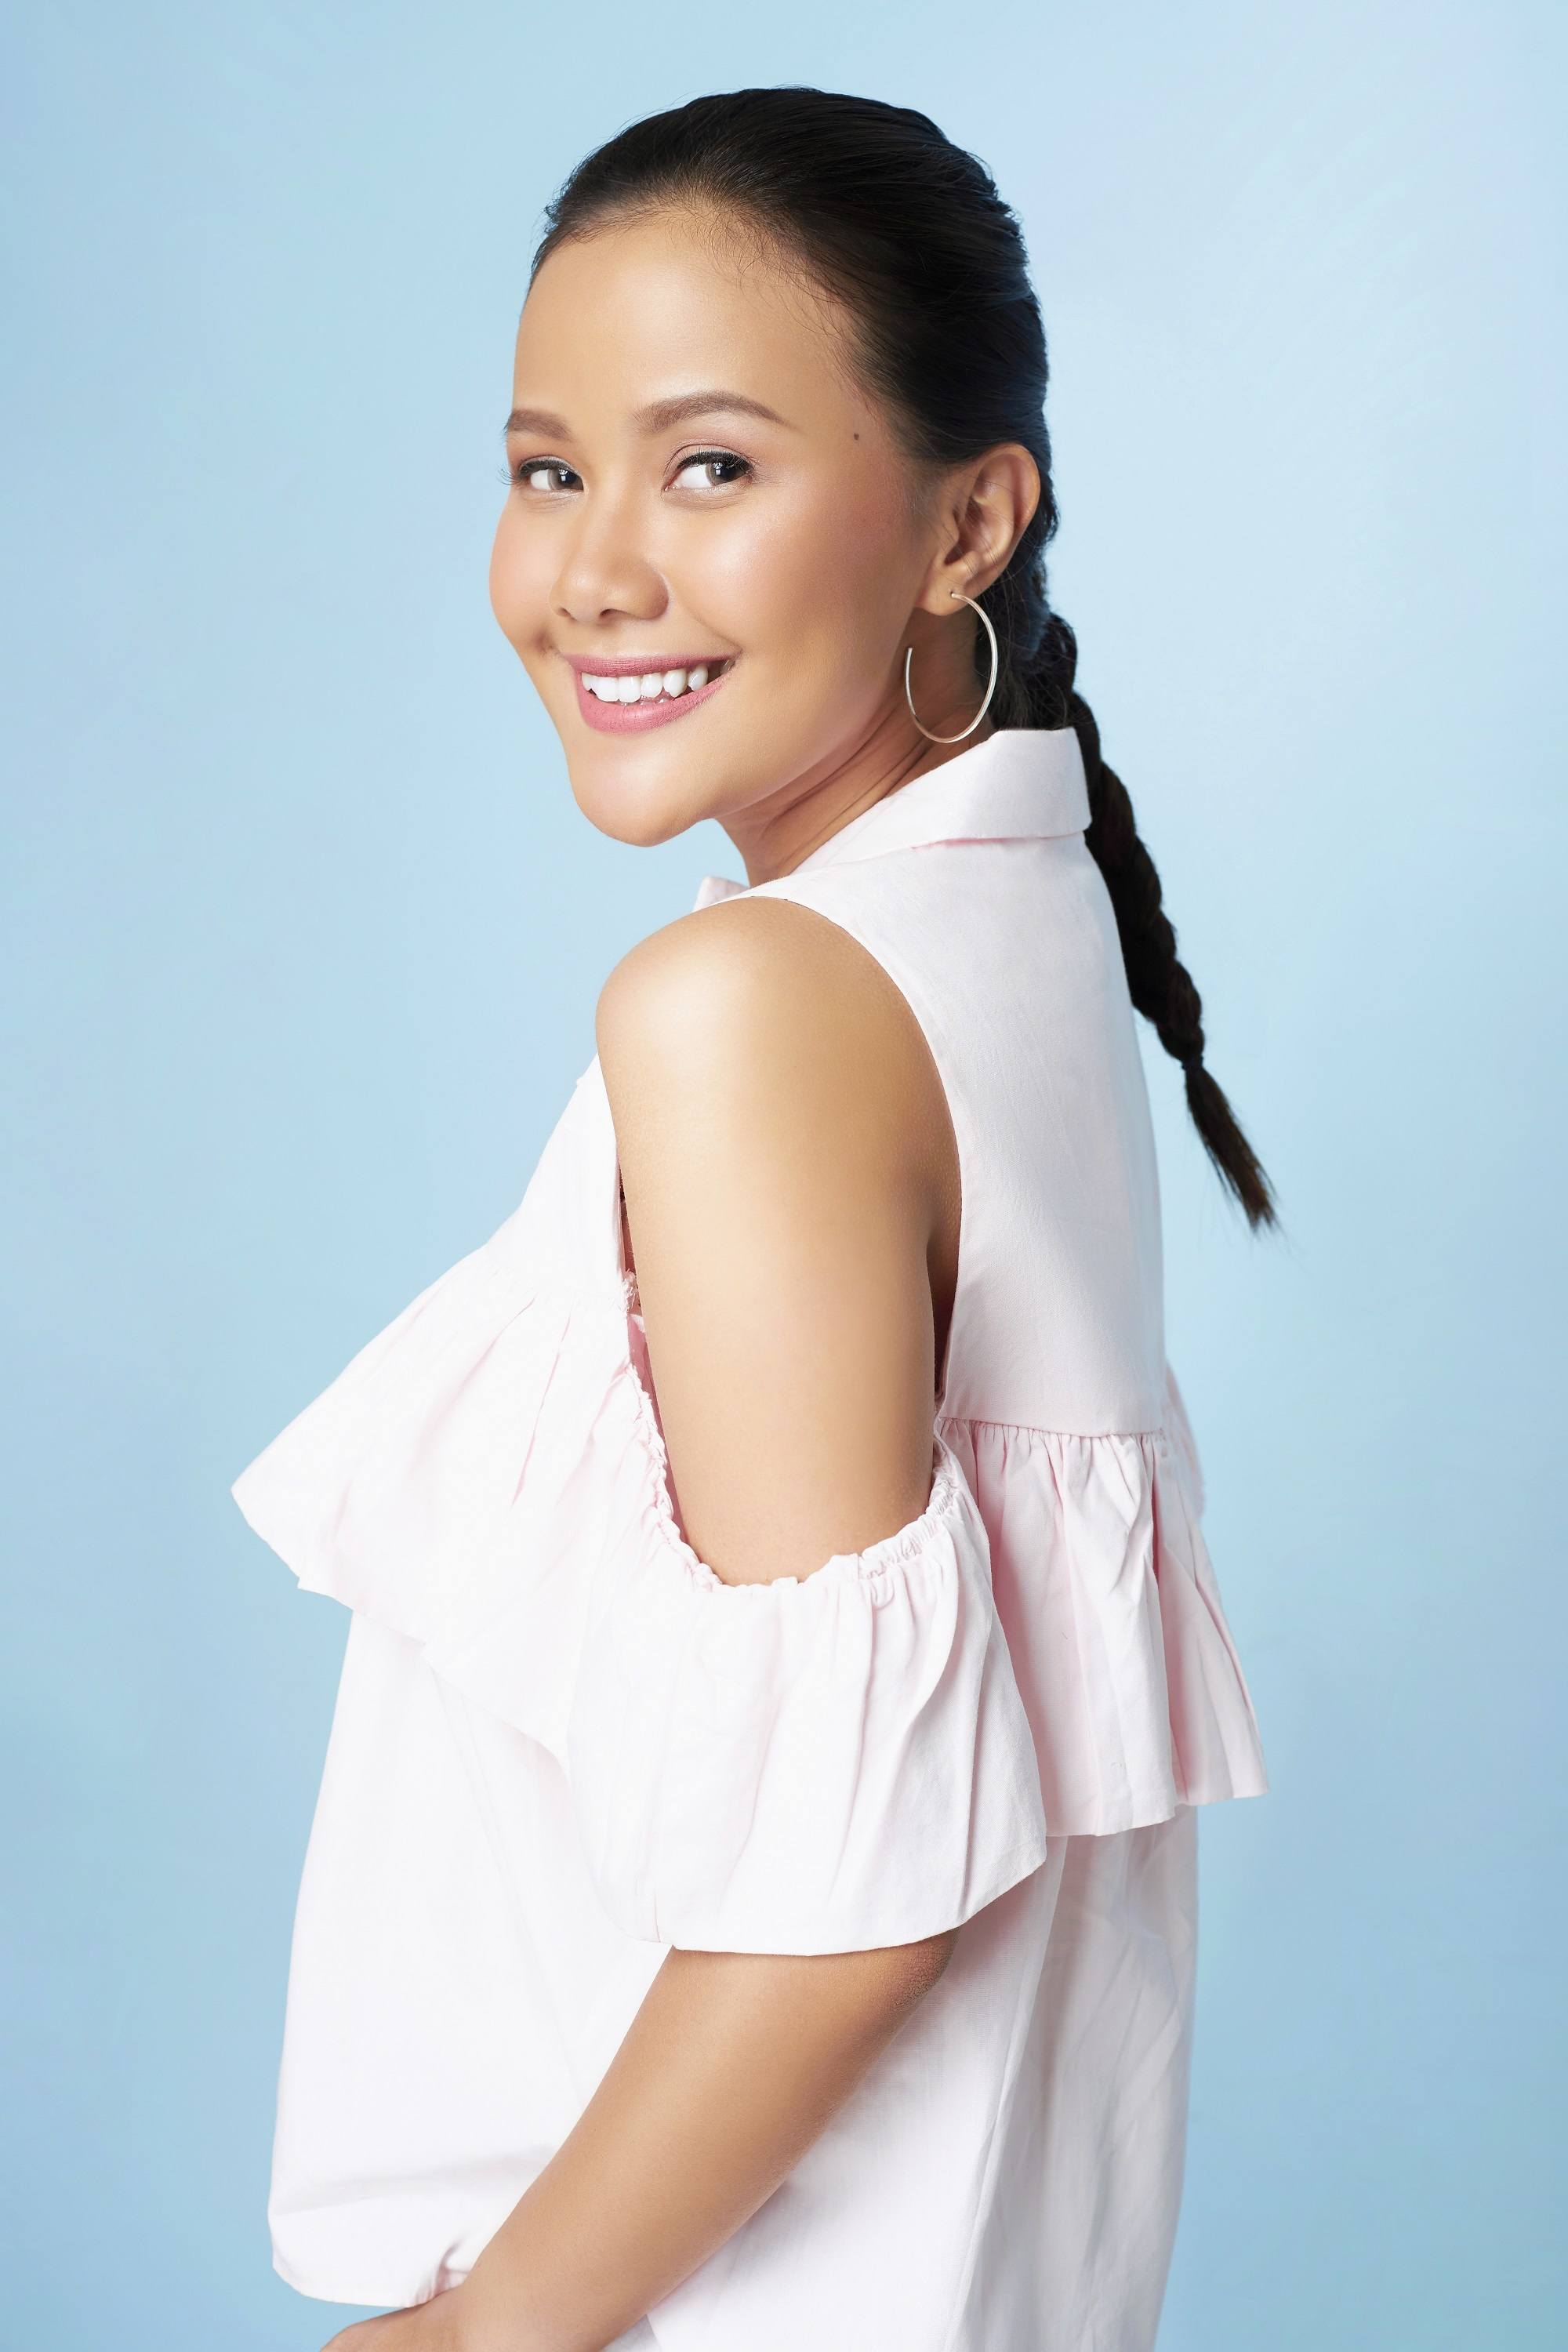 All Things Hair Live x Jay Wee event: Asian woman with Dutch braid